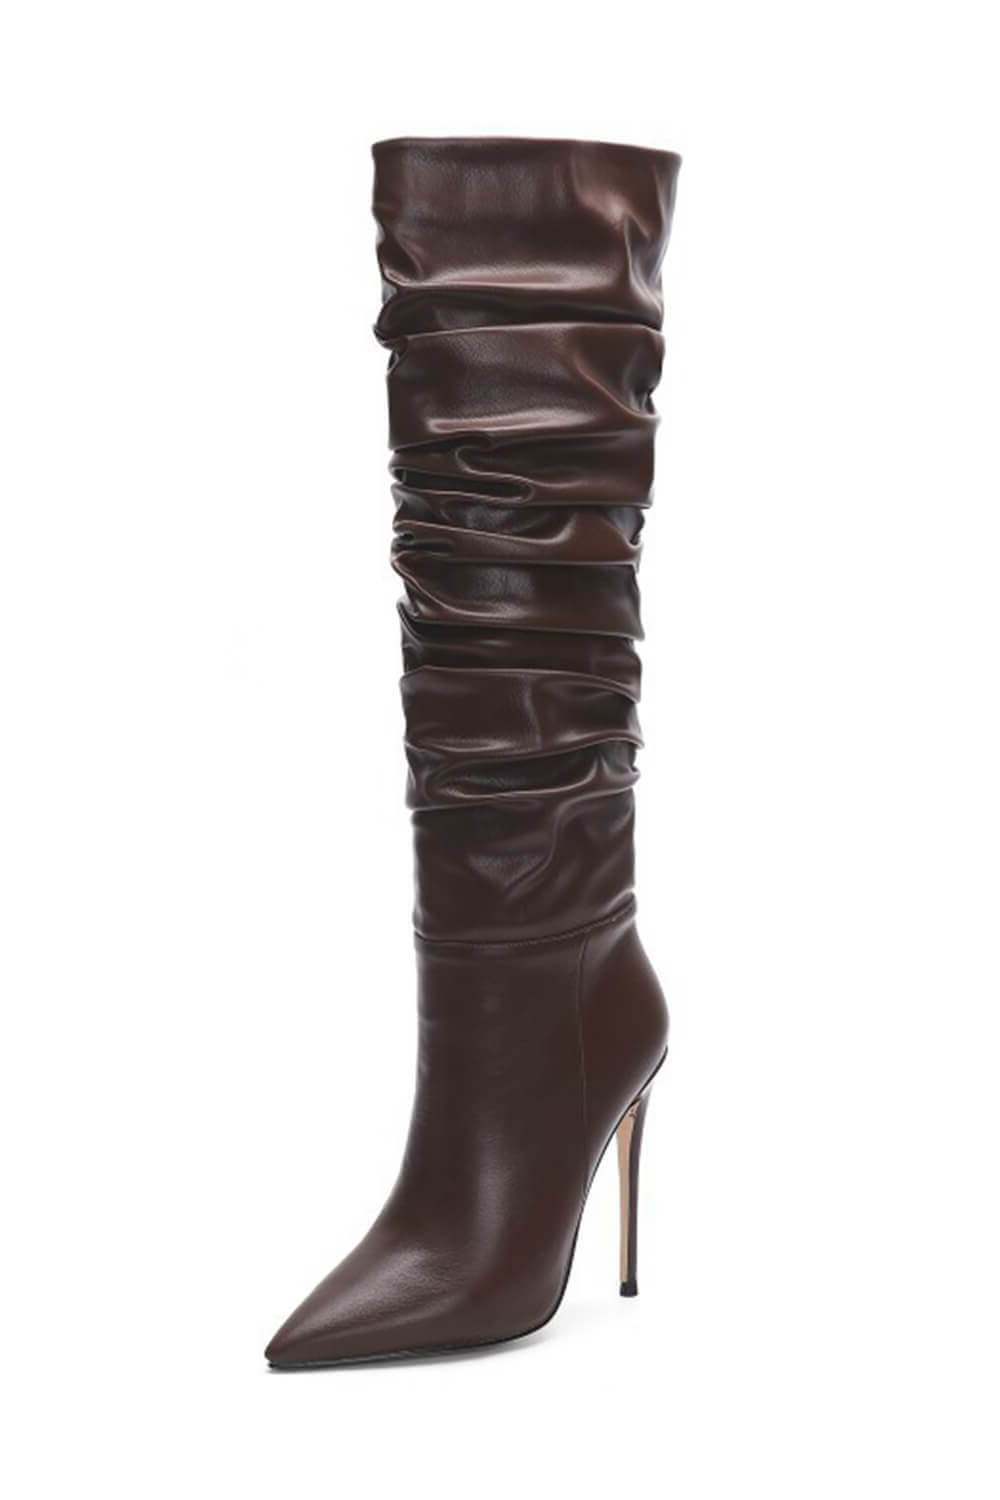 Coffee Ruched Stiletto Knee High Boots (4110248378427)